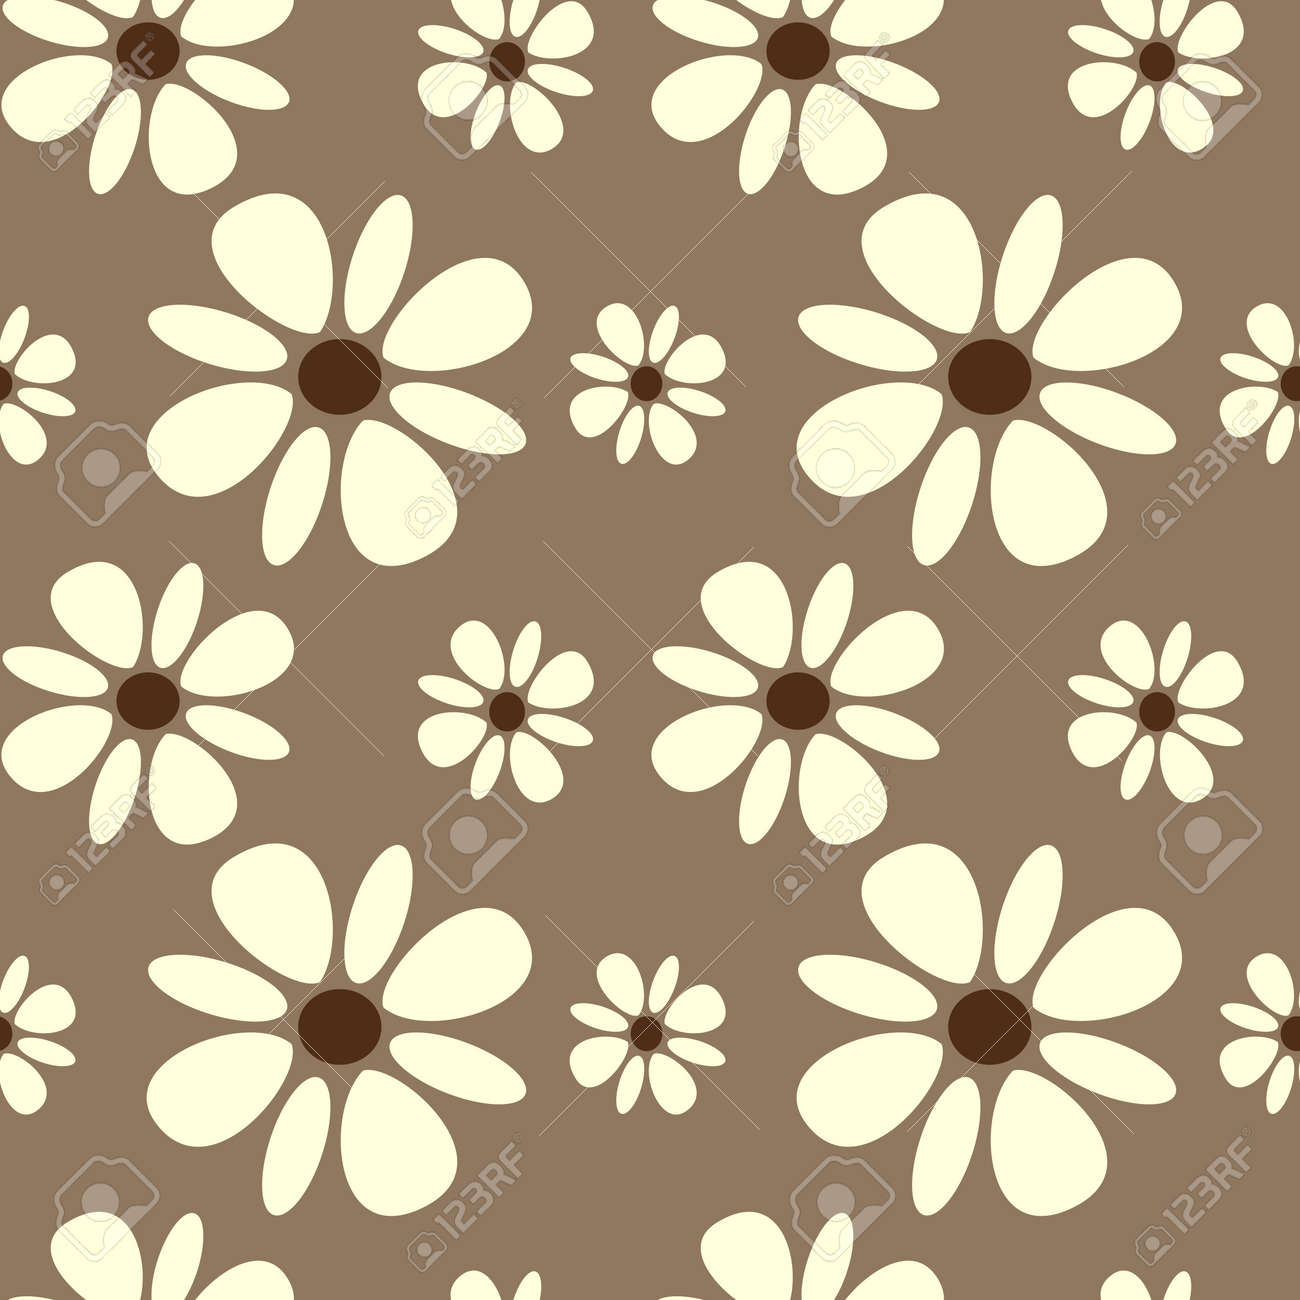 Beautiful White Daisy Flowers On Brown Background Seamless Pattern Royalty Free Cliparts Vectors And Stock Illustration Image 48521061 Shop for artificial daisy flower online at target. beautiful white daisy flowers on brown background seamless pattern